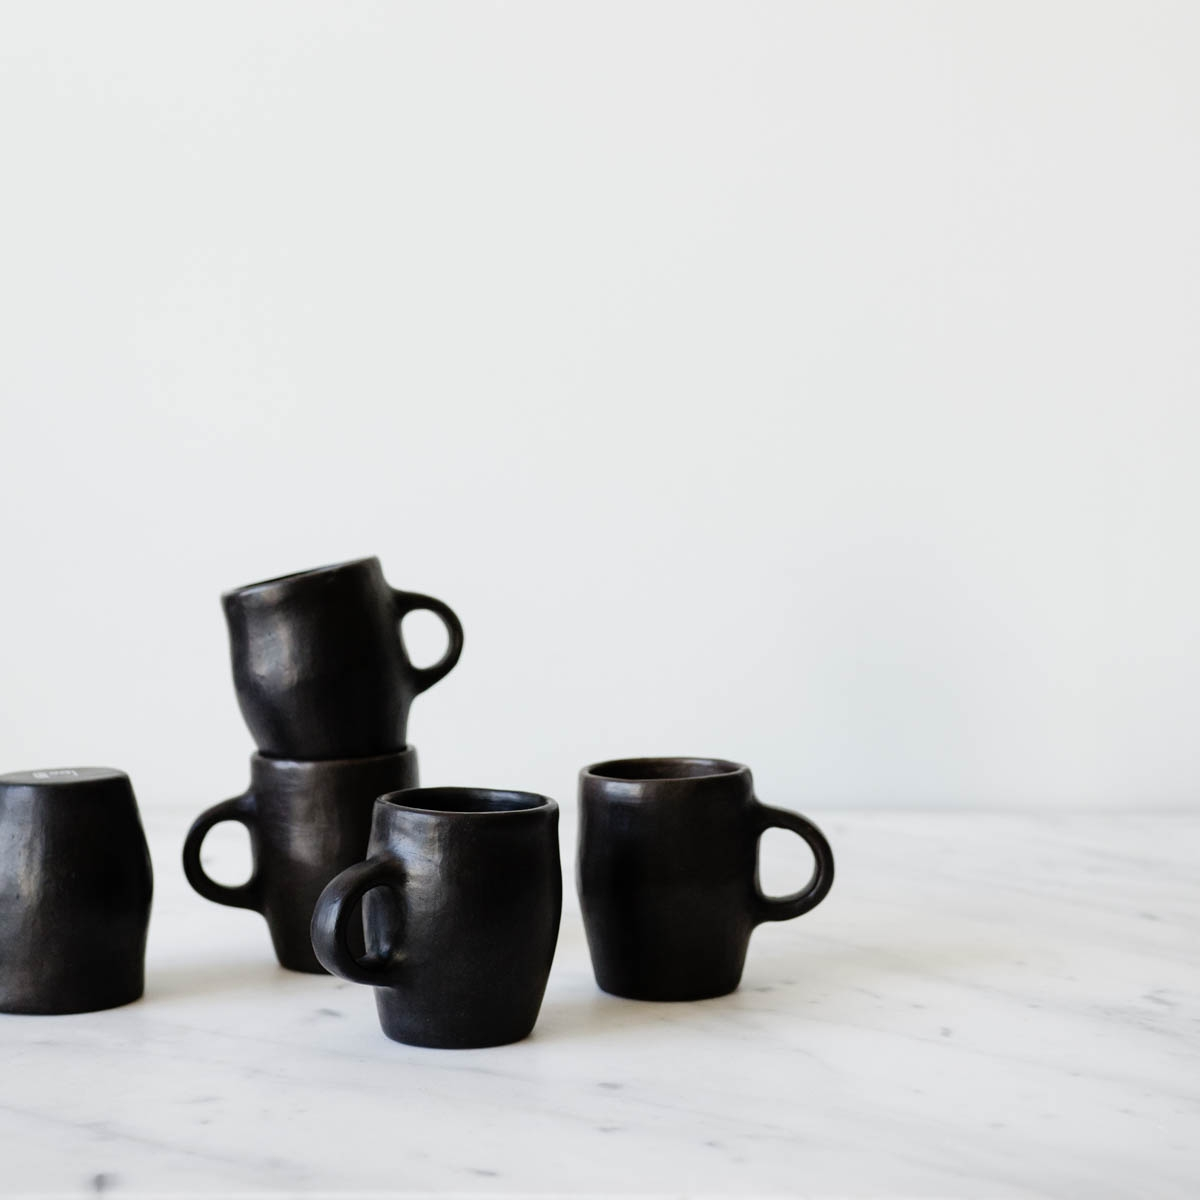 CERAMIC MUG | $13 - JUNE Home Supply